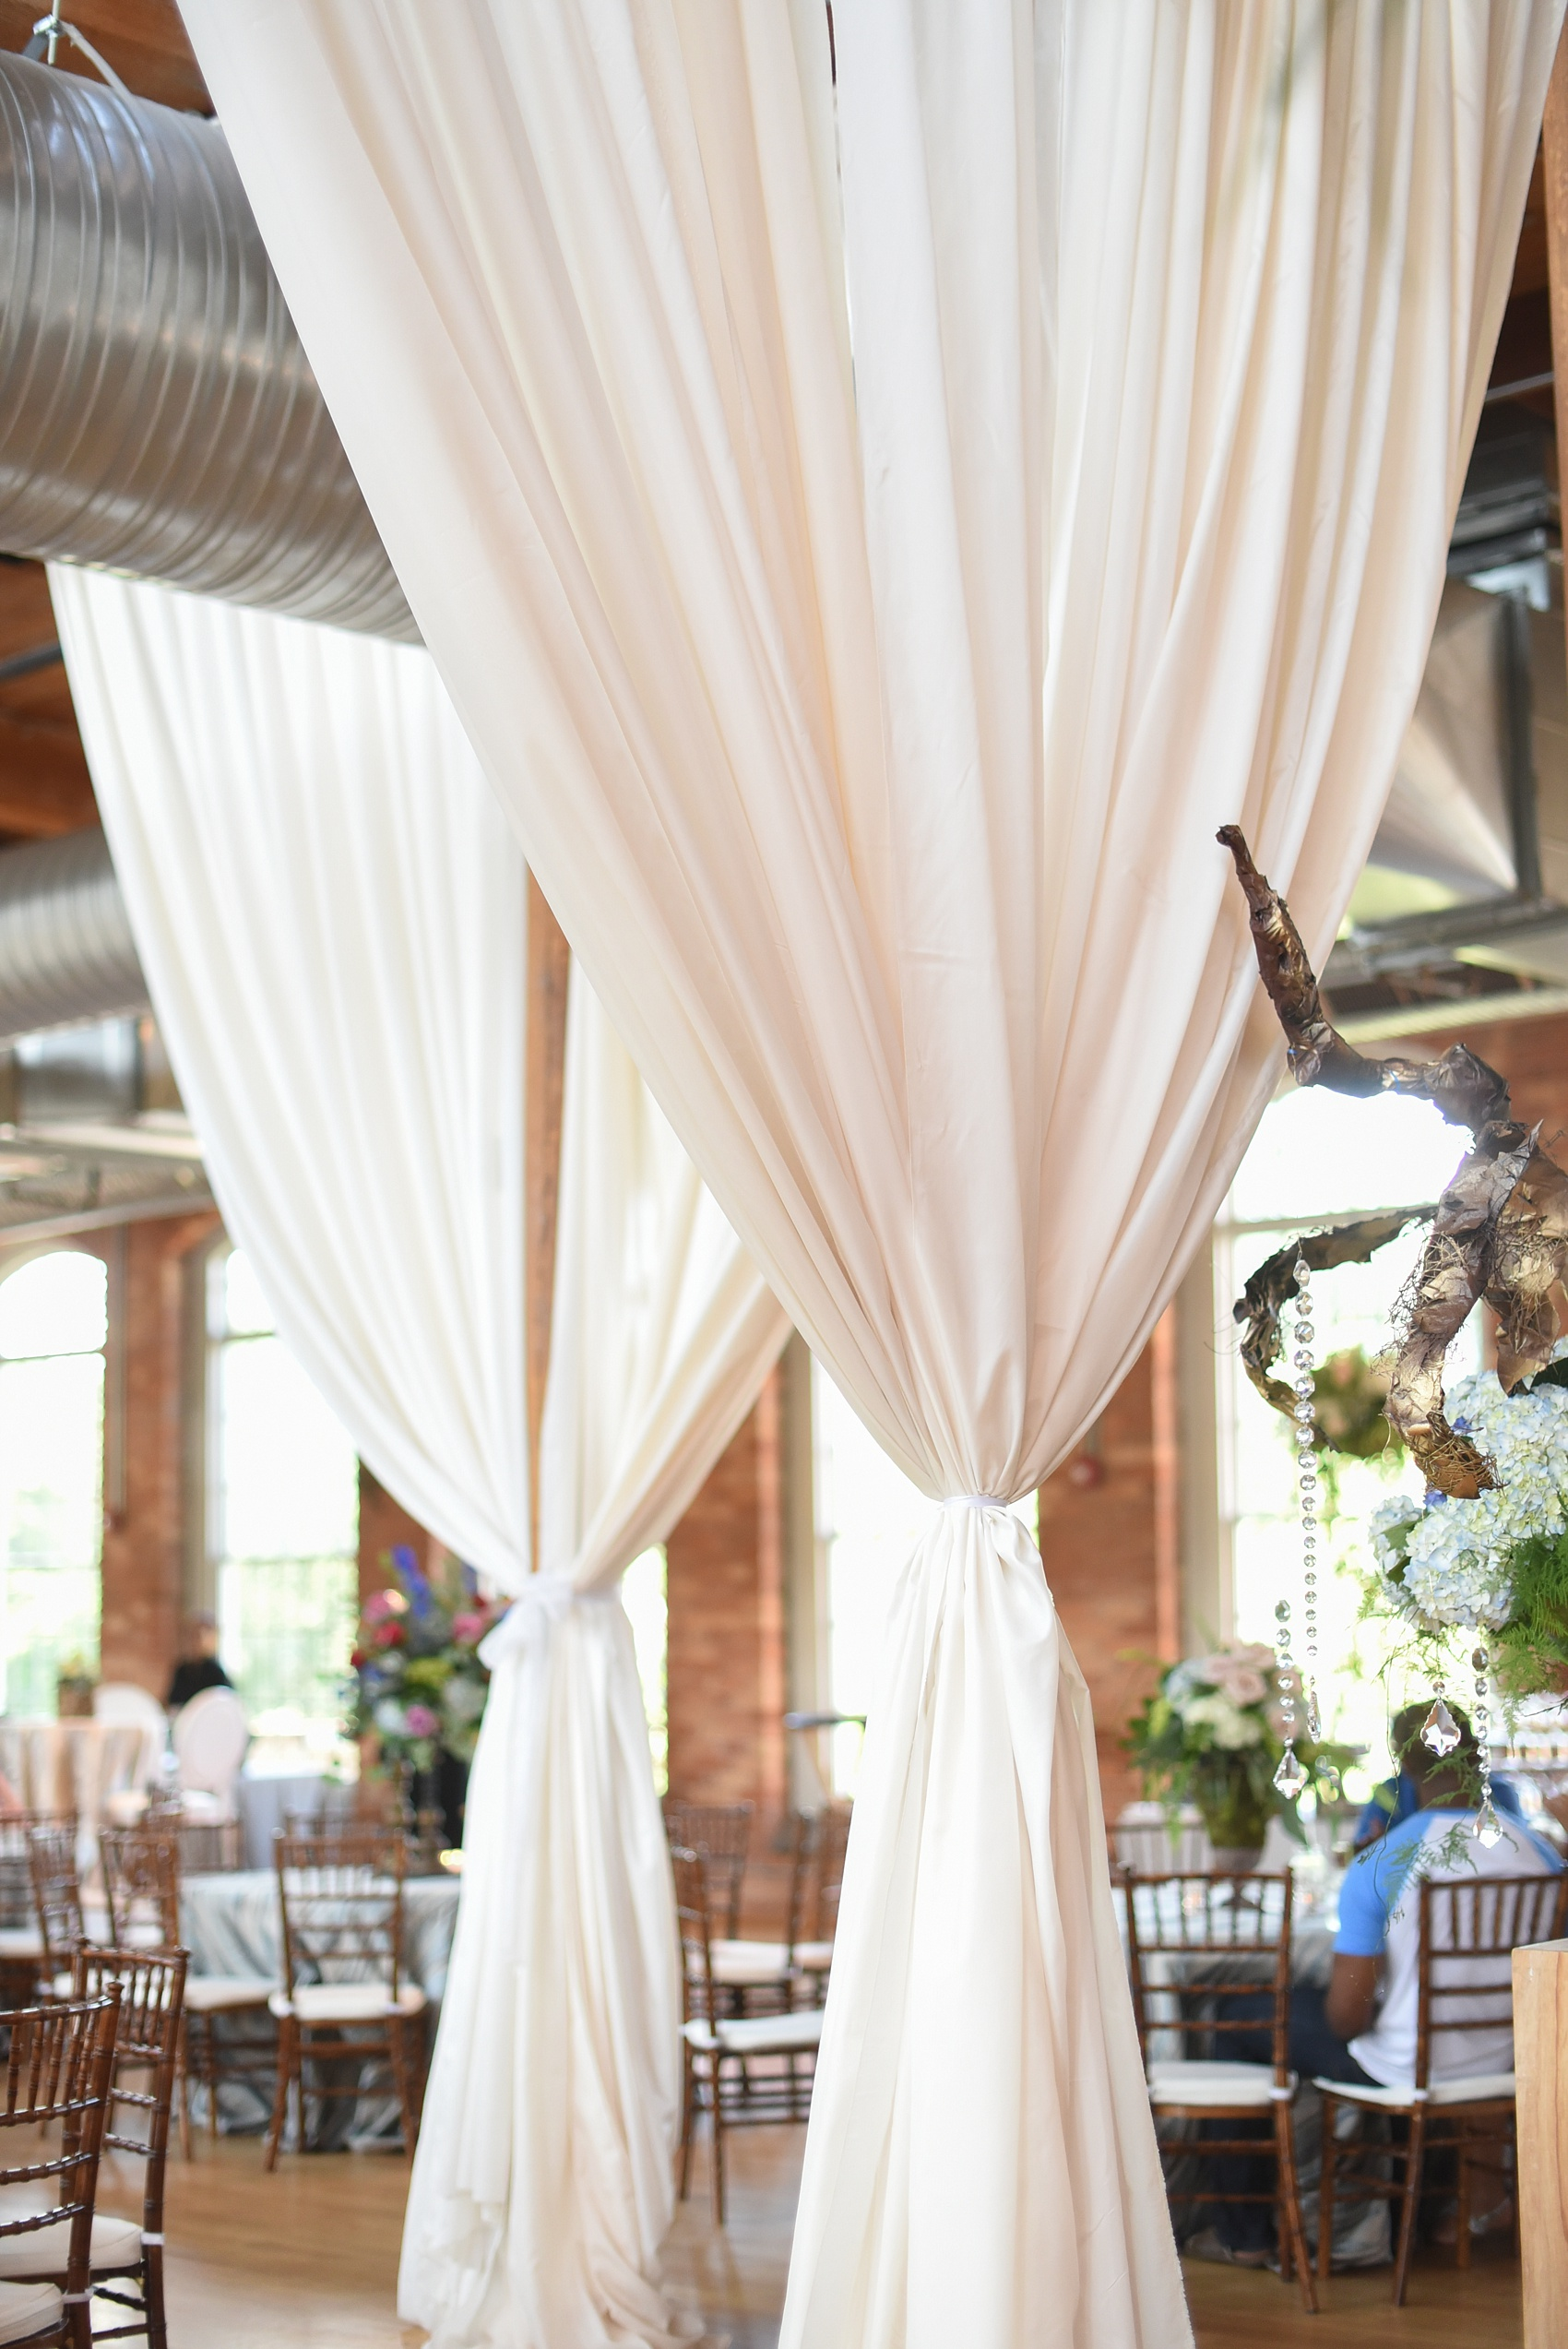 Mikkel Paige Photography photos from The Cotton Room wedding venue in Durham, NC. Cotton linen draped from the ceiling rafters served as elegant room dividers and accents.